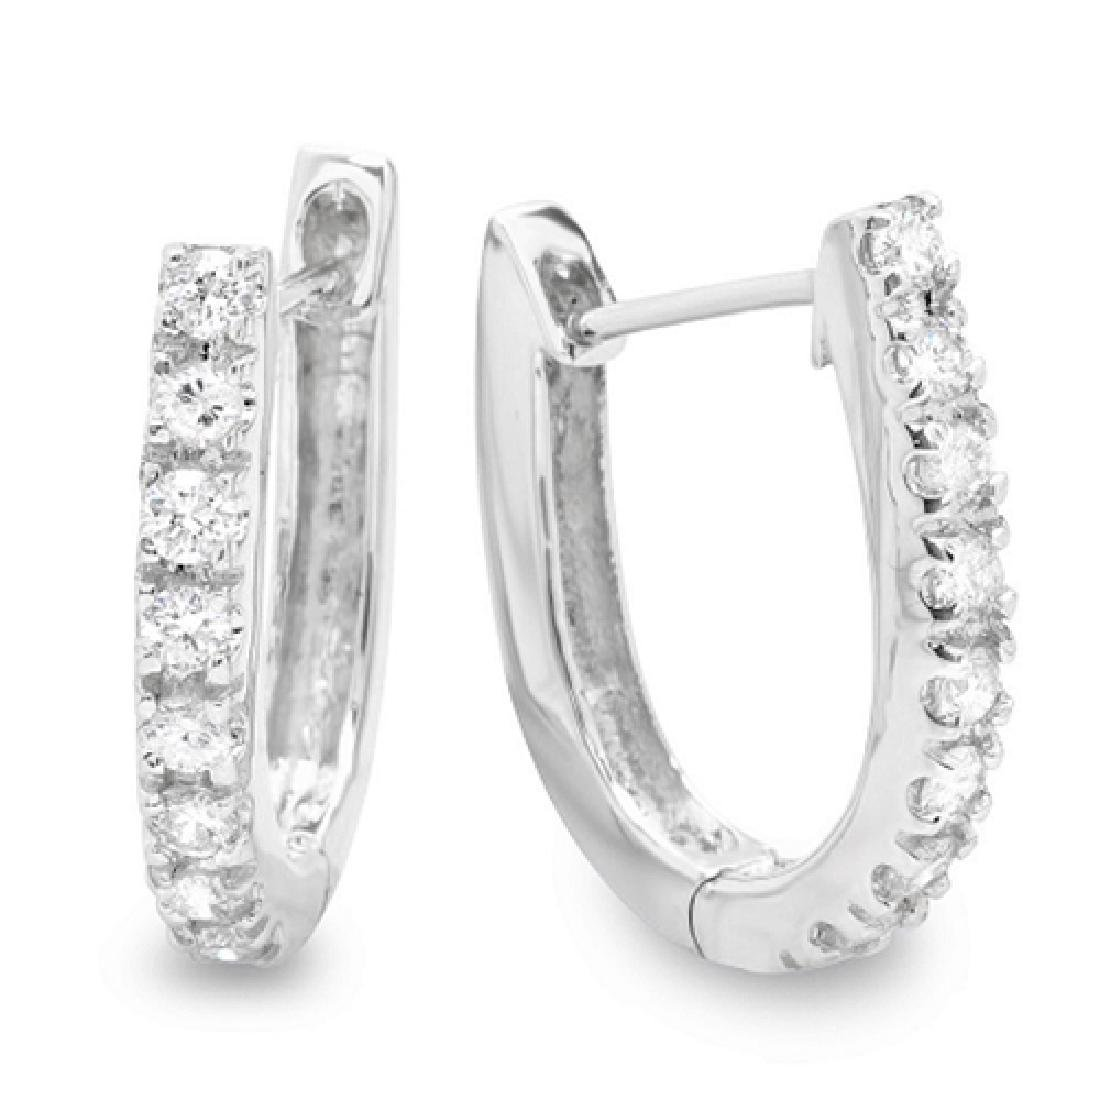 0.45 Carat Natural Diamond 18K Solid White Gold Earring